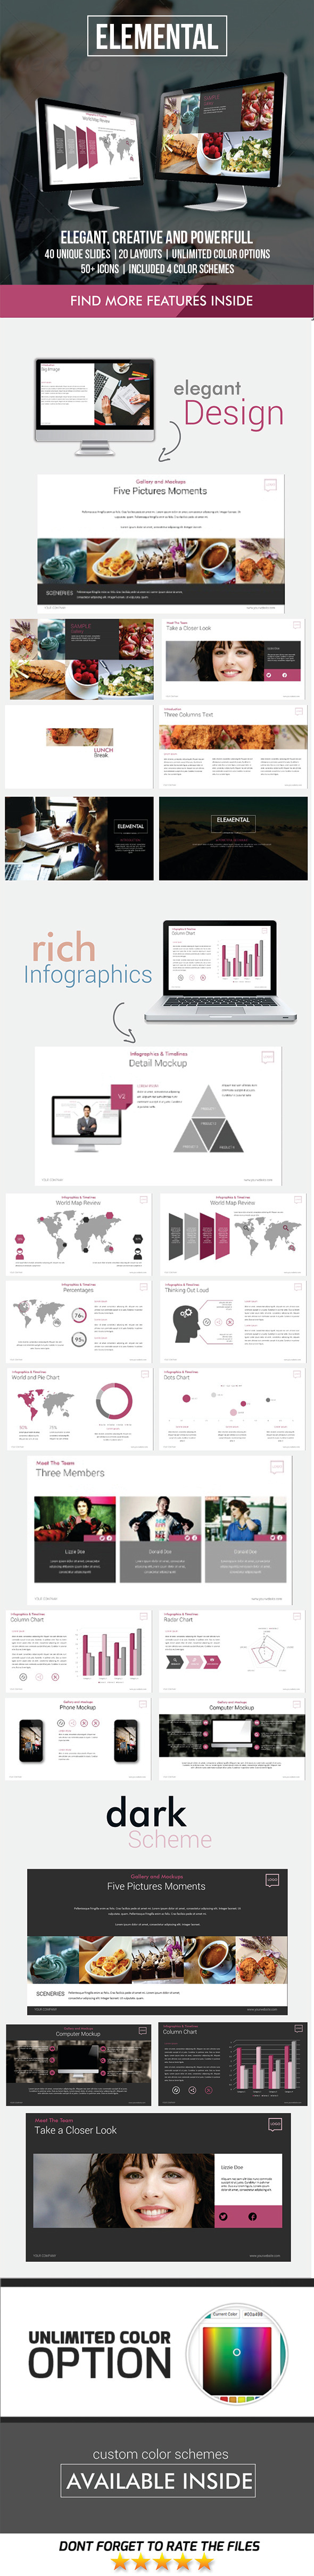 Elemental PowerPoint Template - Business PowerPoint Templates